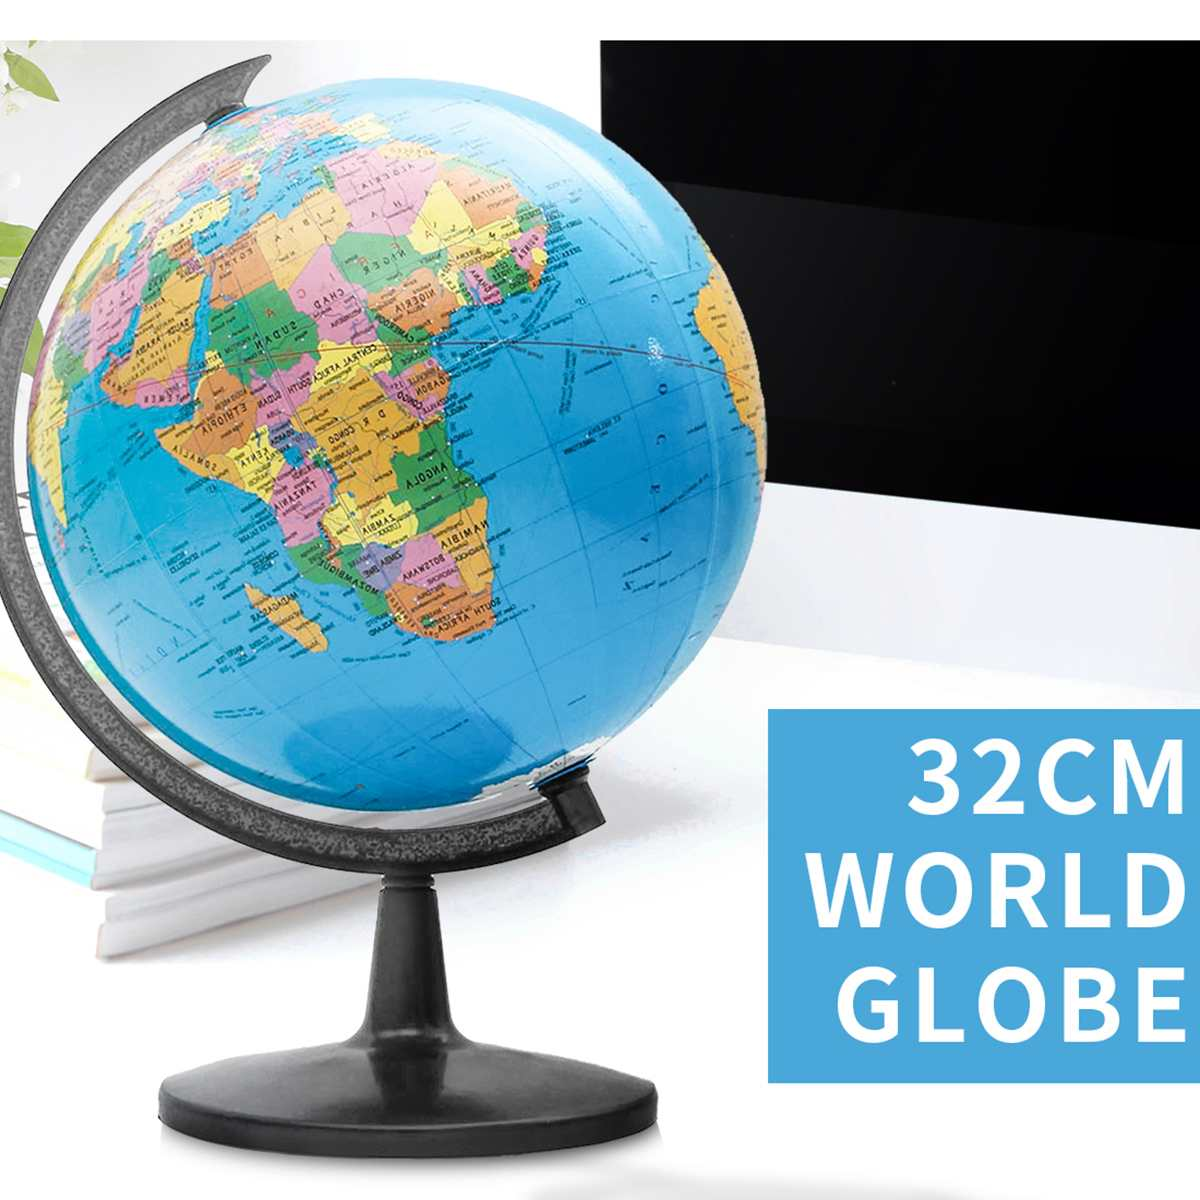 32CM World Globe Atlas Map With Swivel Stand Geography Educational Toy Home Office Miniatures Ornament Gift Student Study Tools